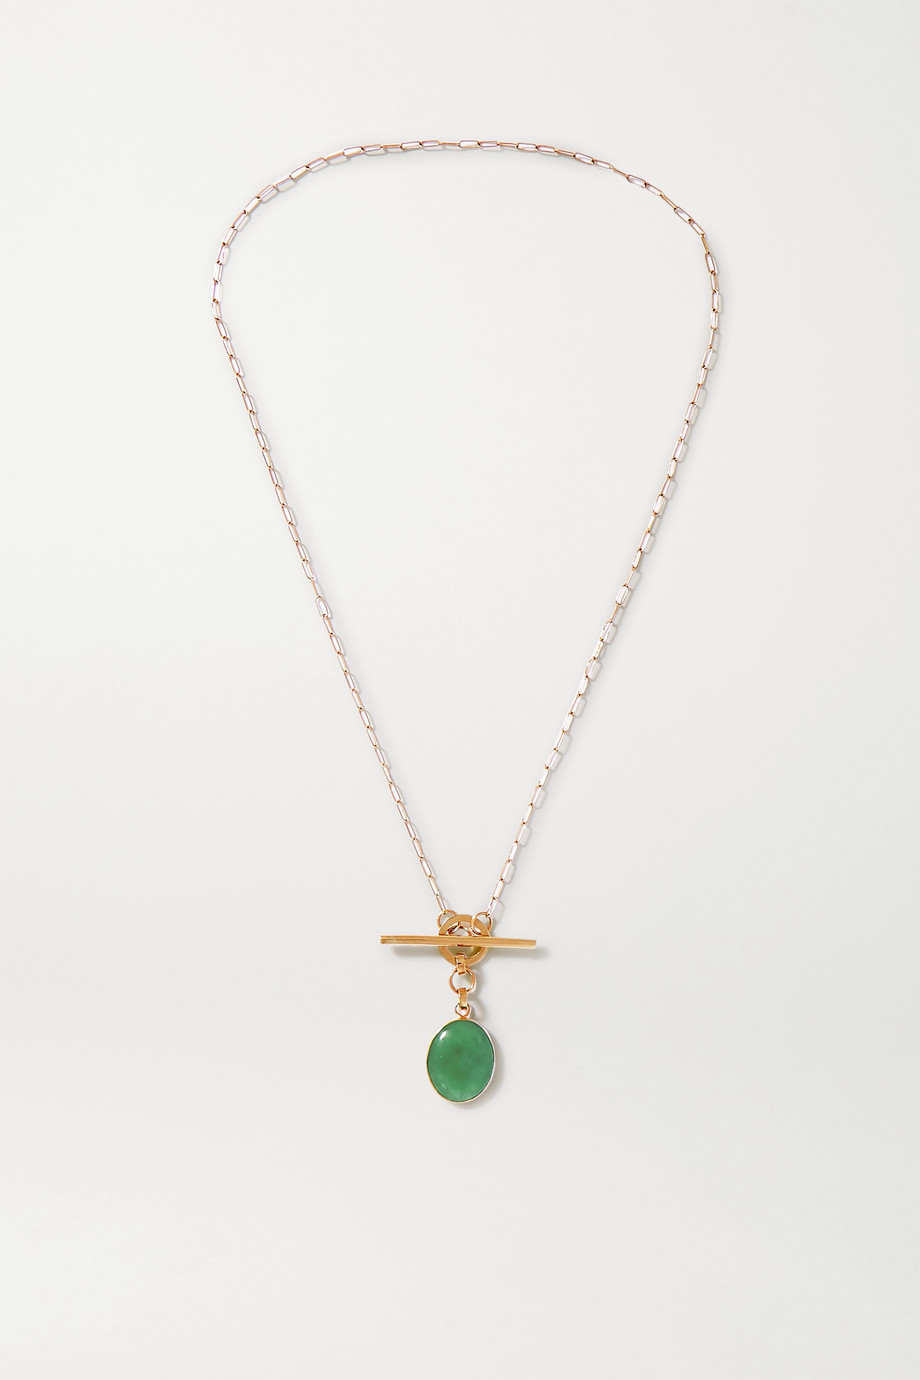 Loren Stewart + NET SUSTAIN 14-karat gold jade necklace